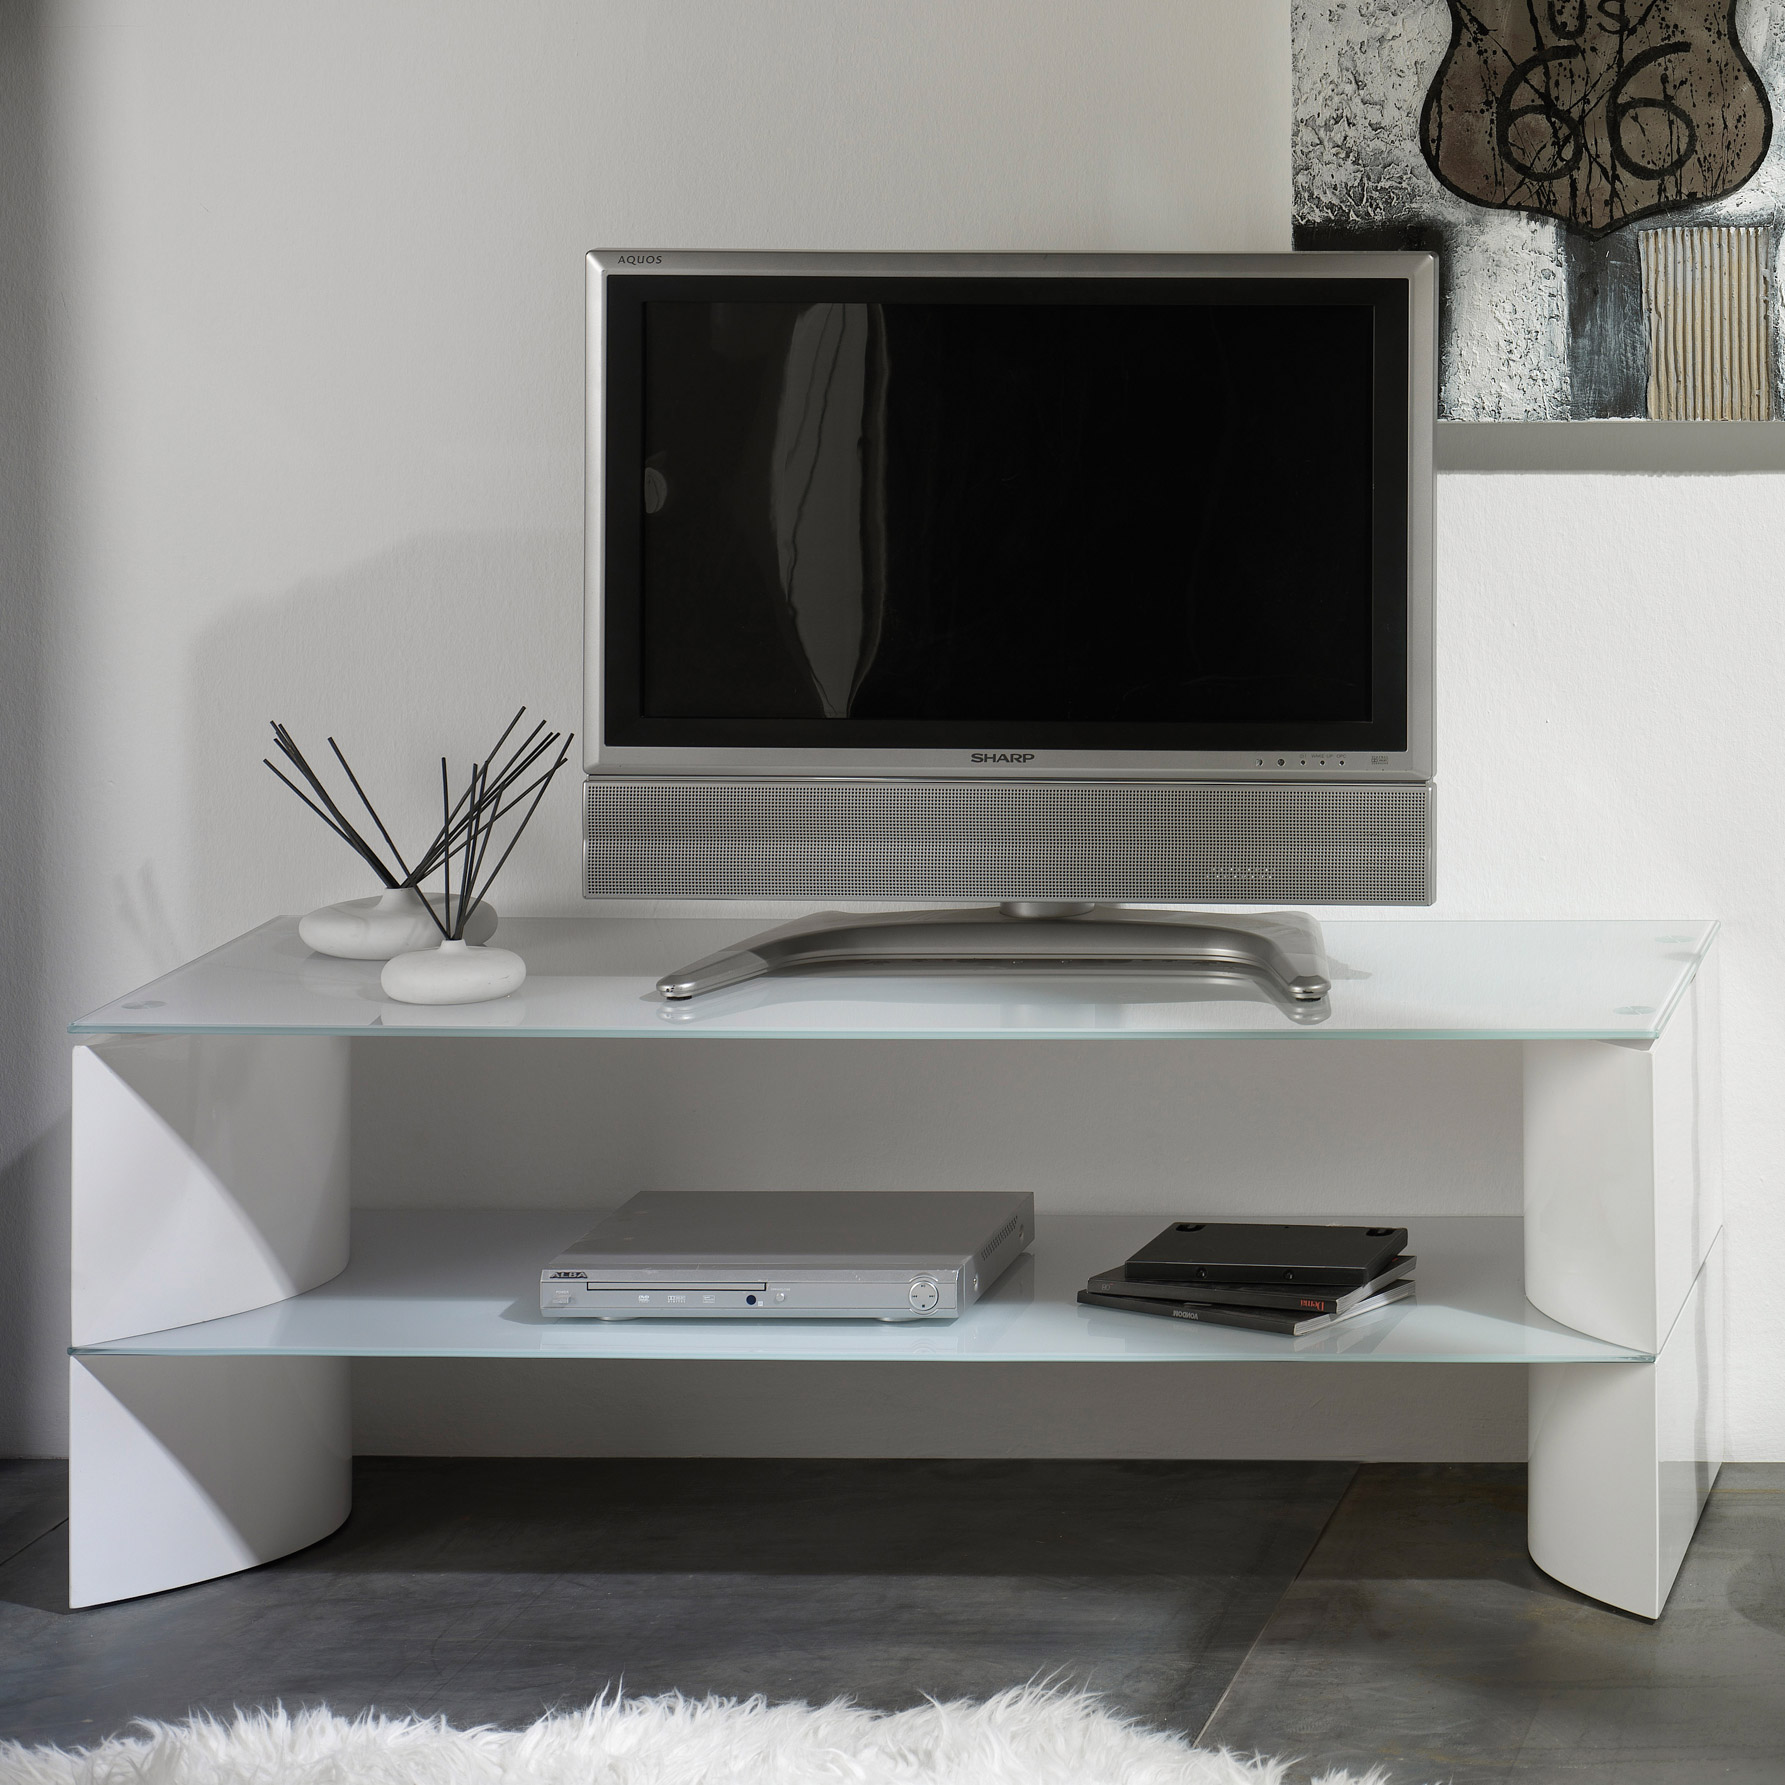 meuble tv blanc laqu 90 cm maison et mobilier d 39 int rieur. Black Bedroom Furniture Sets. Home Design Ideas